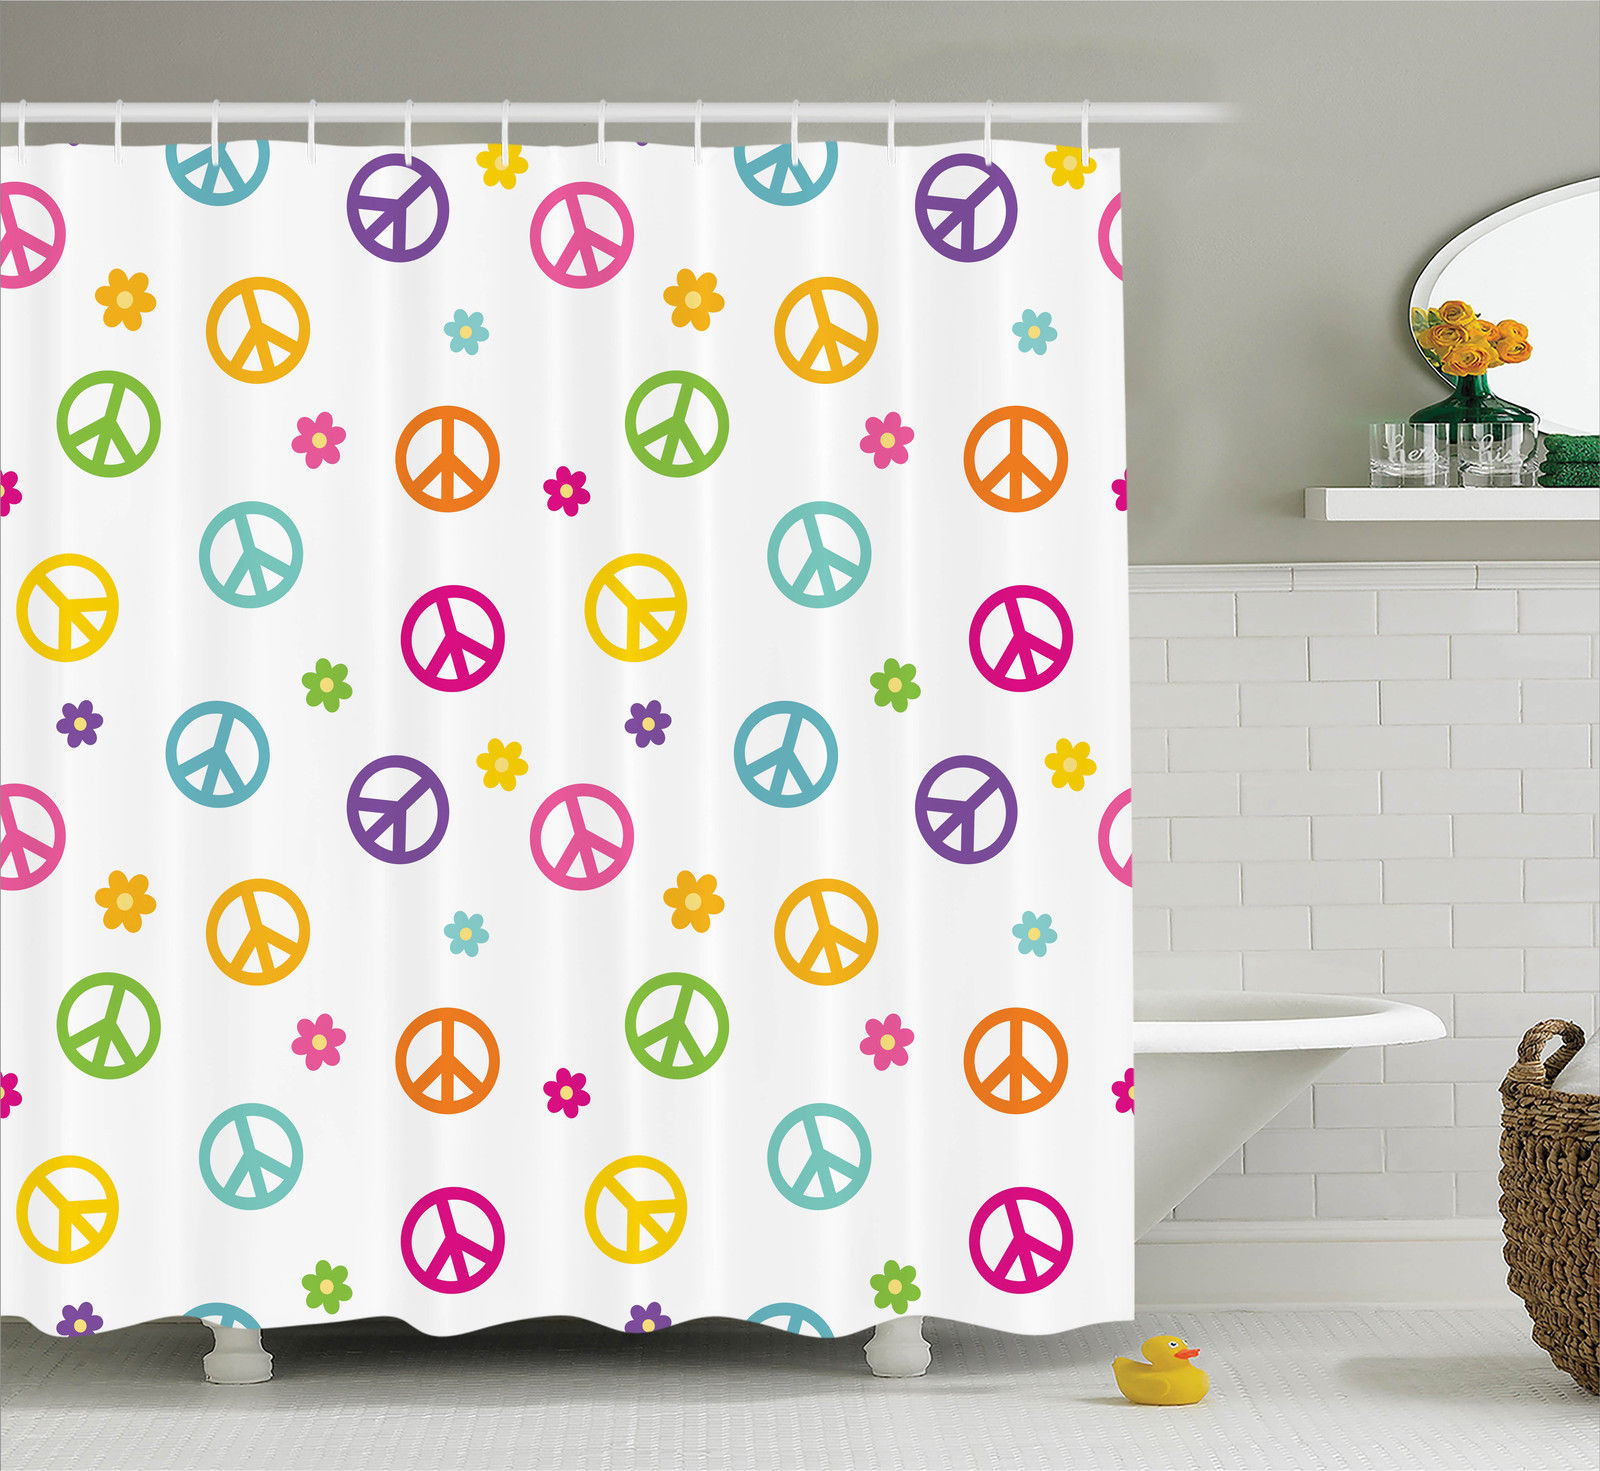 8x12 FT Groovy Vinyl Photography Backdrop,Peace Flower Symbol Colorful Illustration About Equality Peaceful World Dreamlike Background for Baby Shower Bridal Wedding Studio Photography Pictures